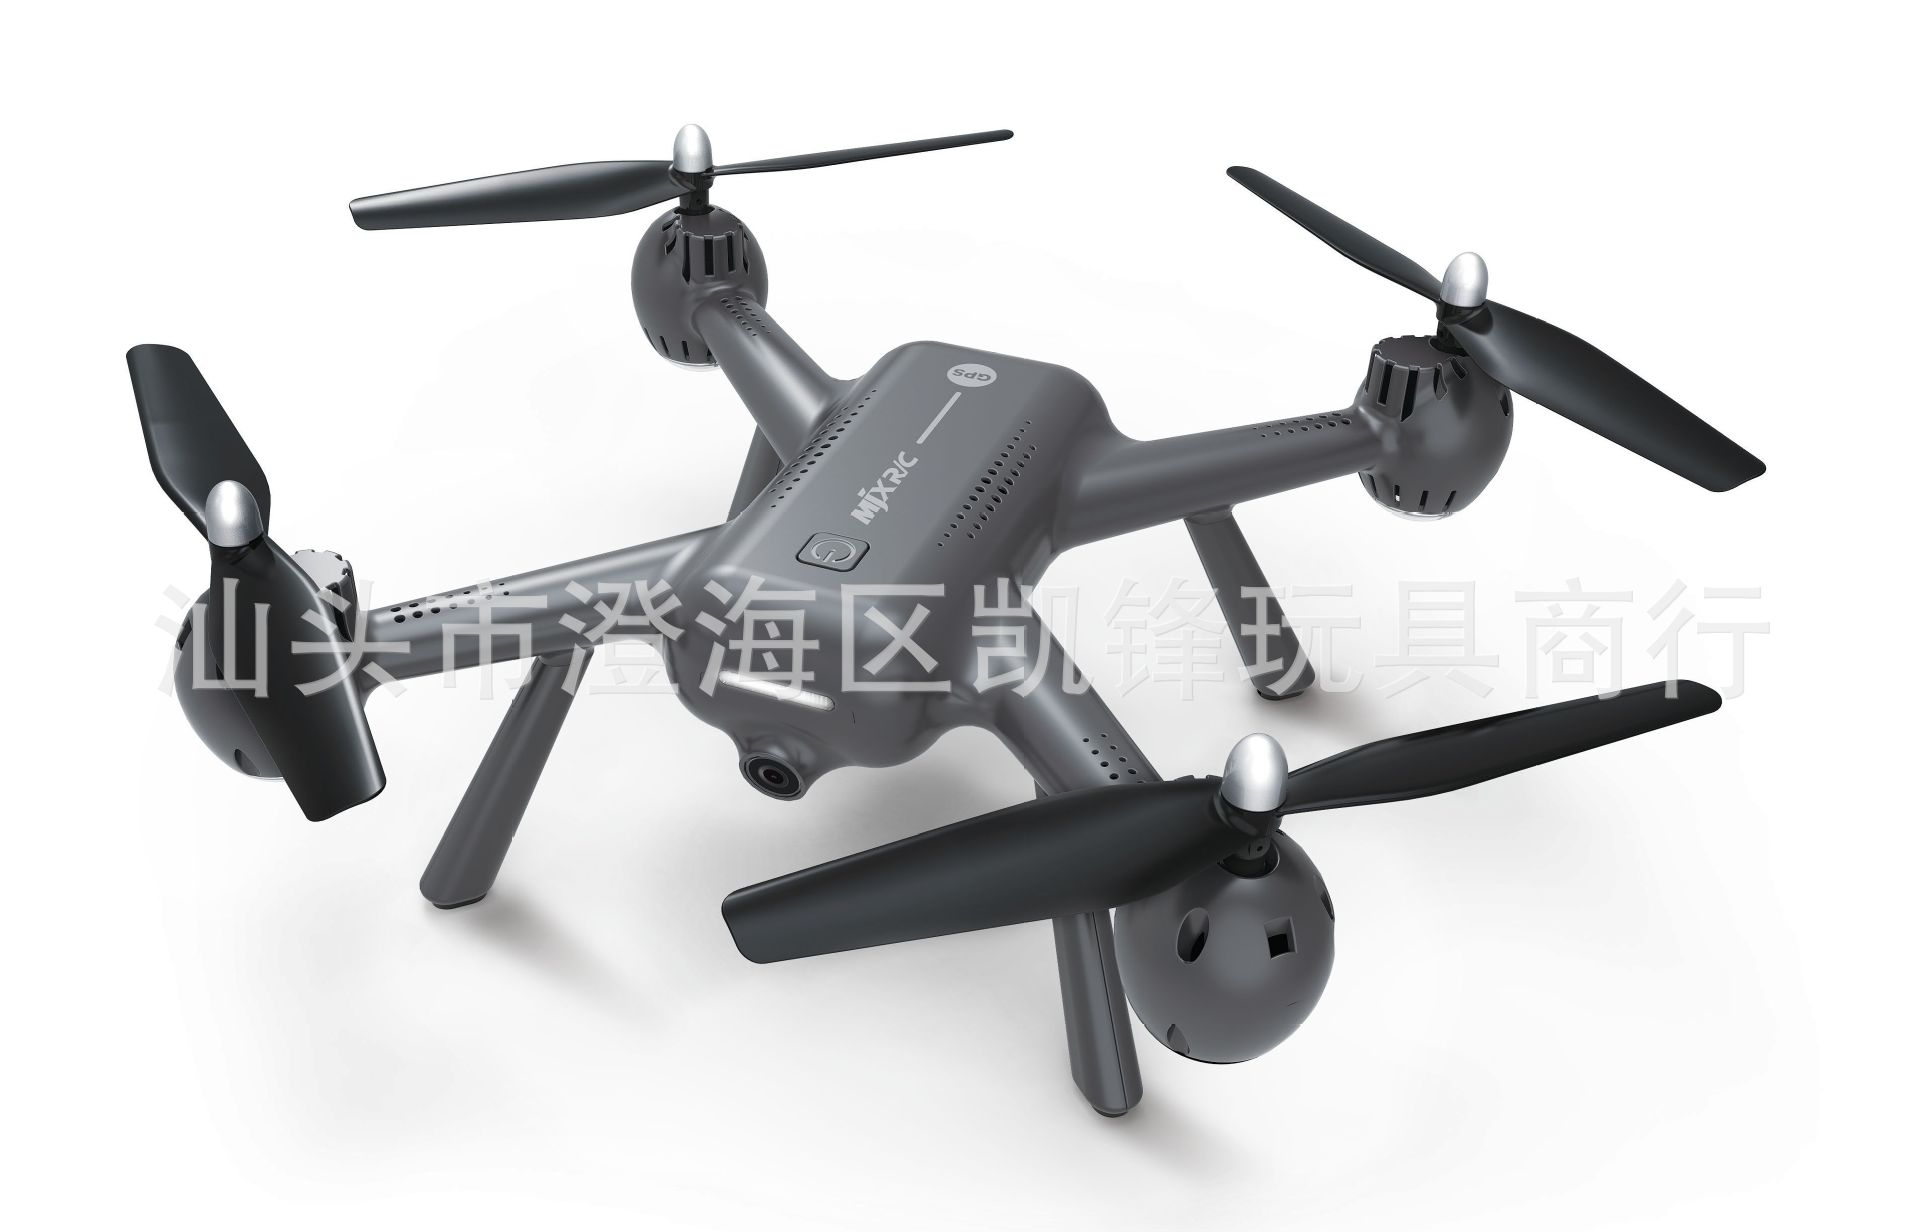 Linda X104g Unmanned Aerial Vehicle GPS Real-Time Image Transmission Drone Remote Control Aircraft Quadcopter Airplane Model Toy